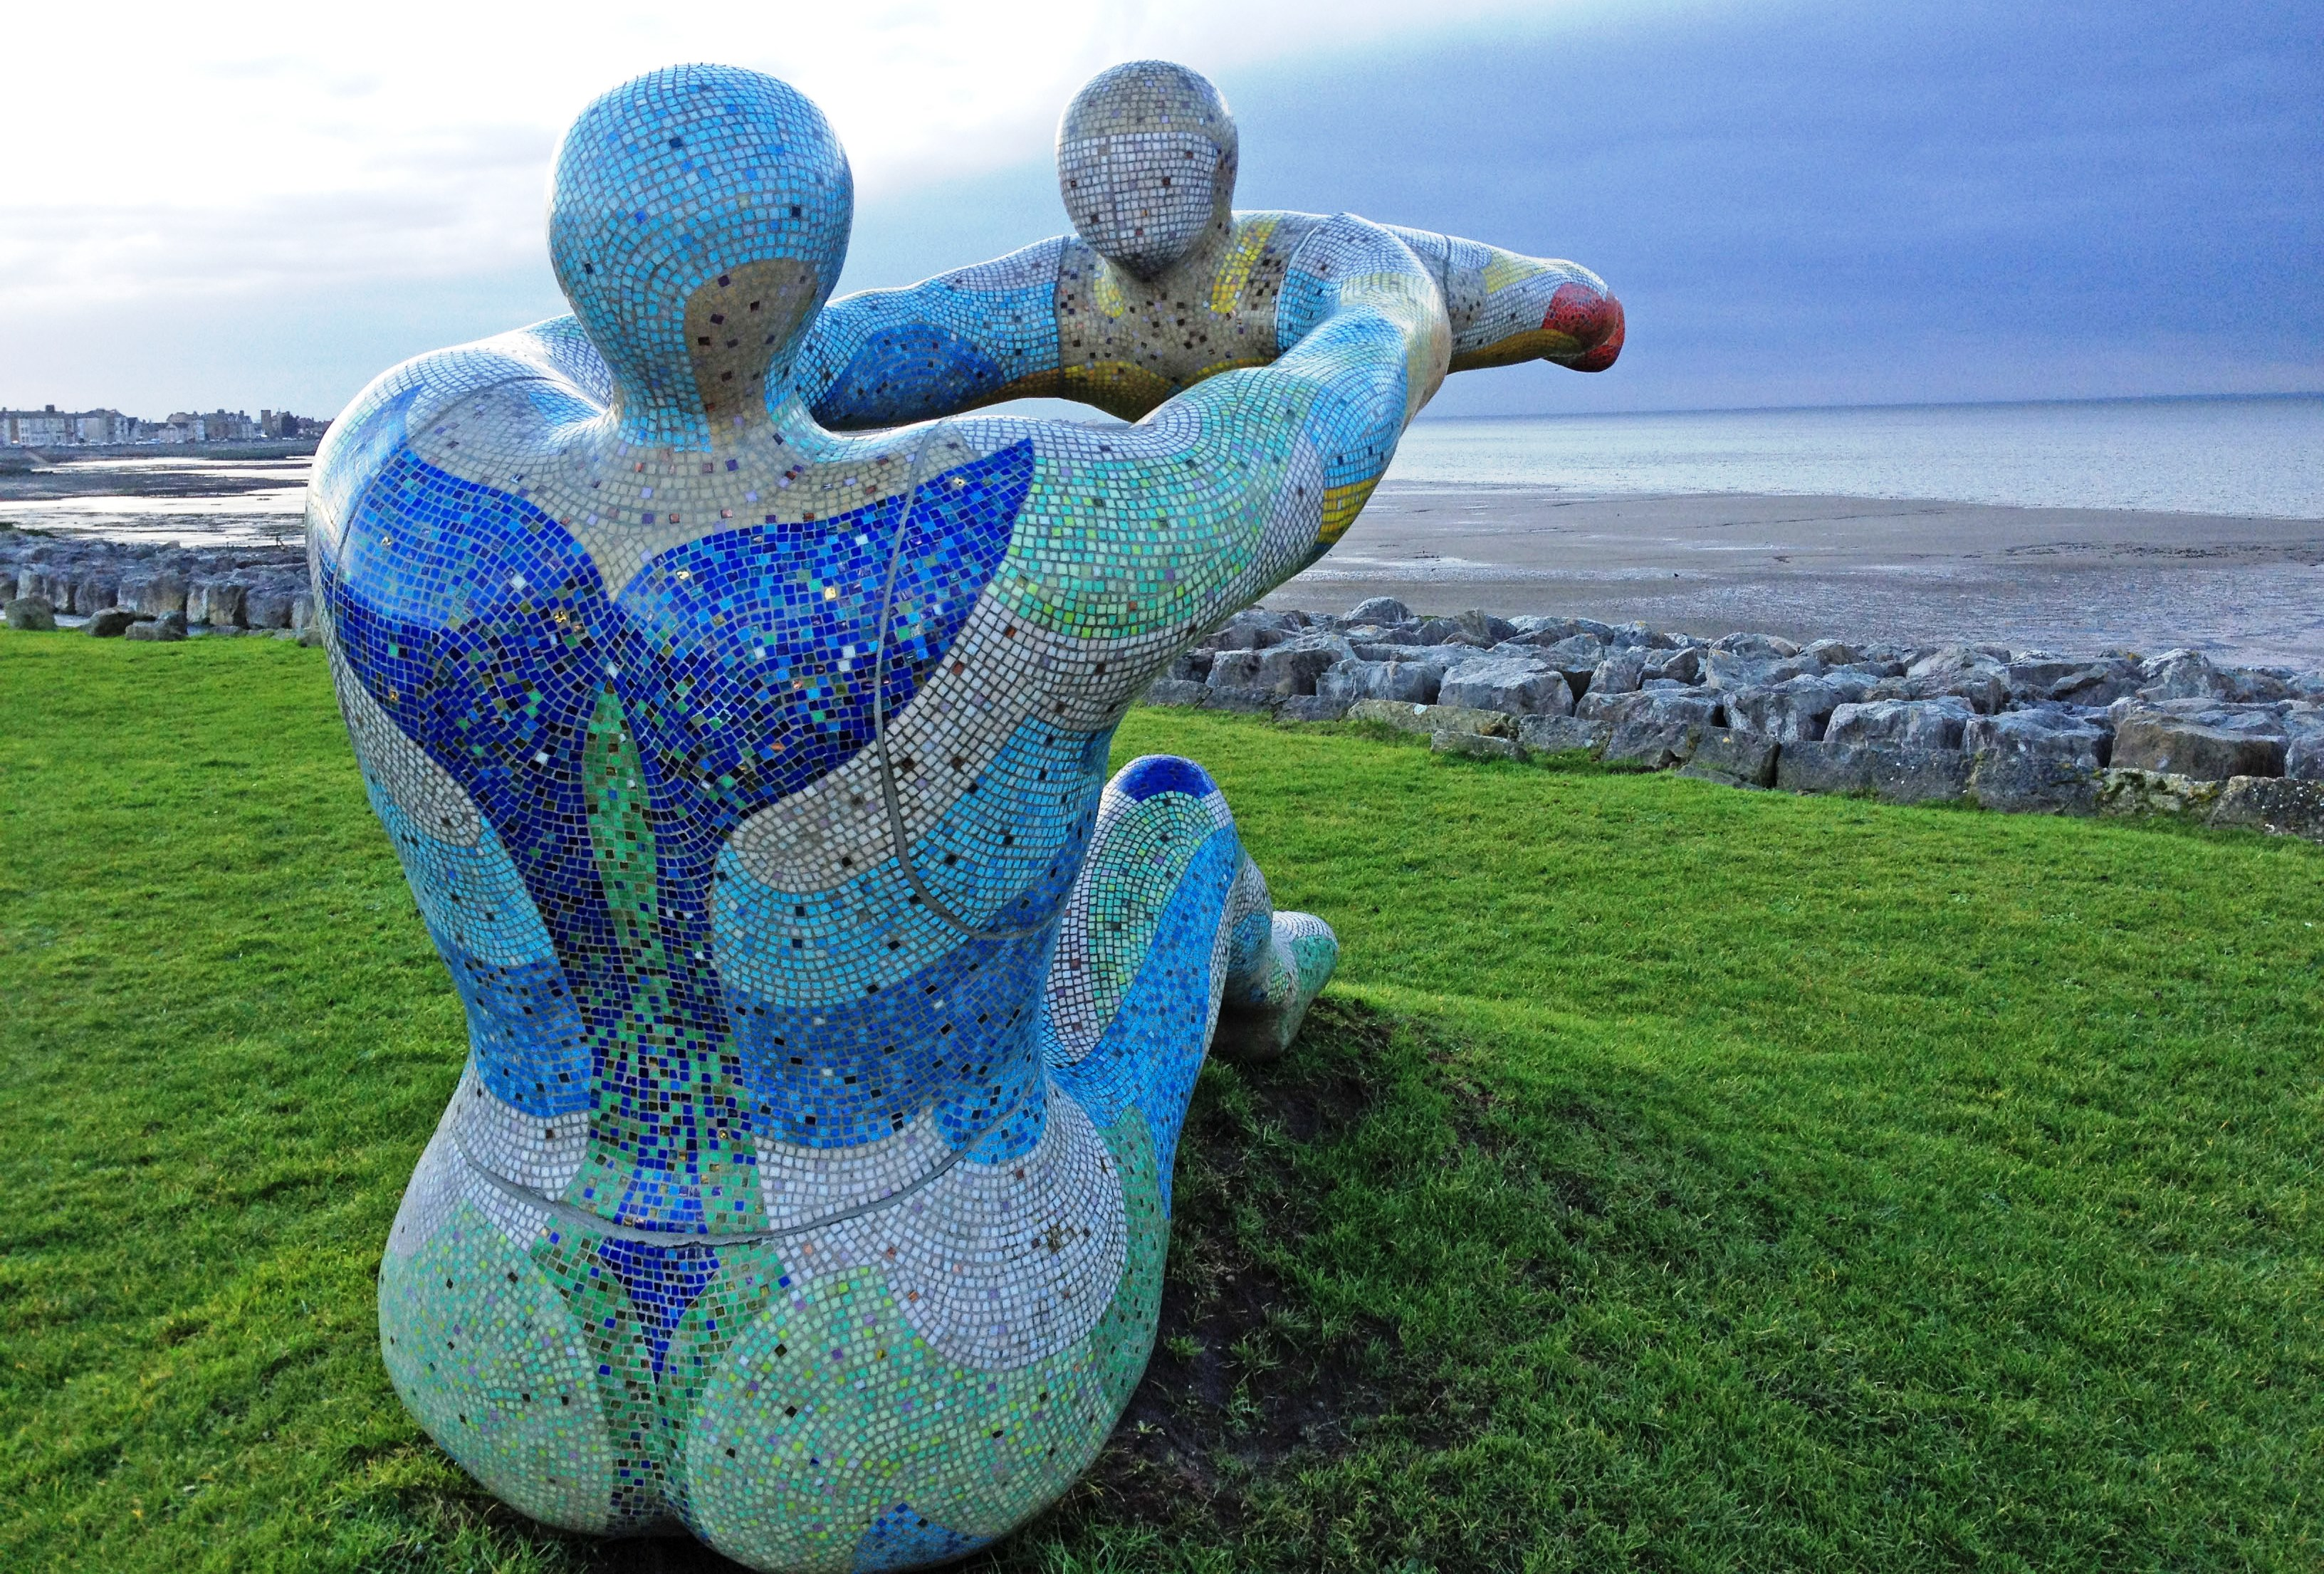 Venus and Cupid statue overlooking Morecambe Bay - photo Zoe Dawes